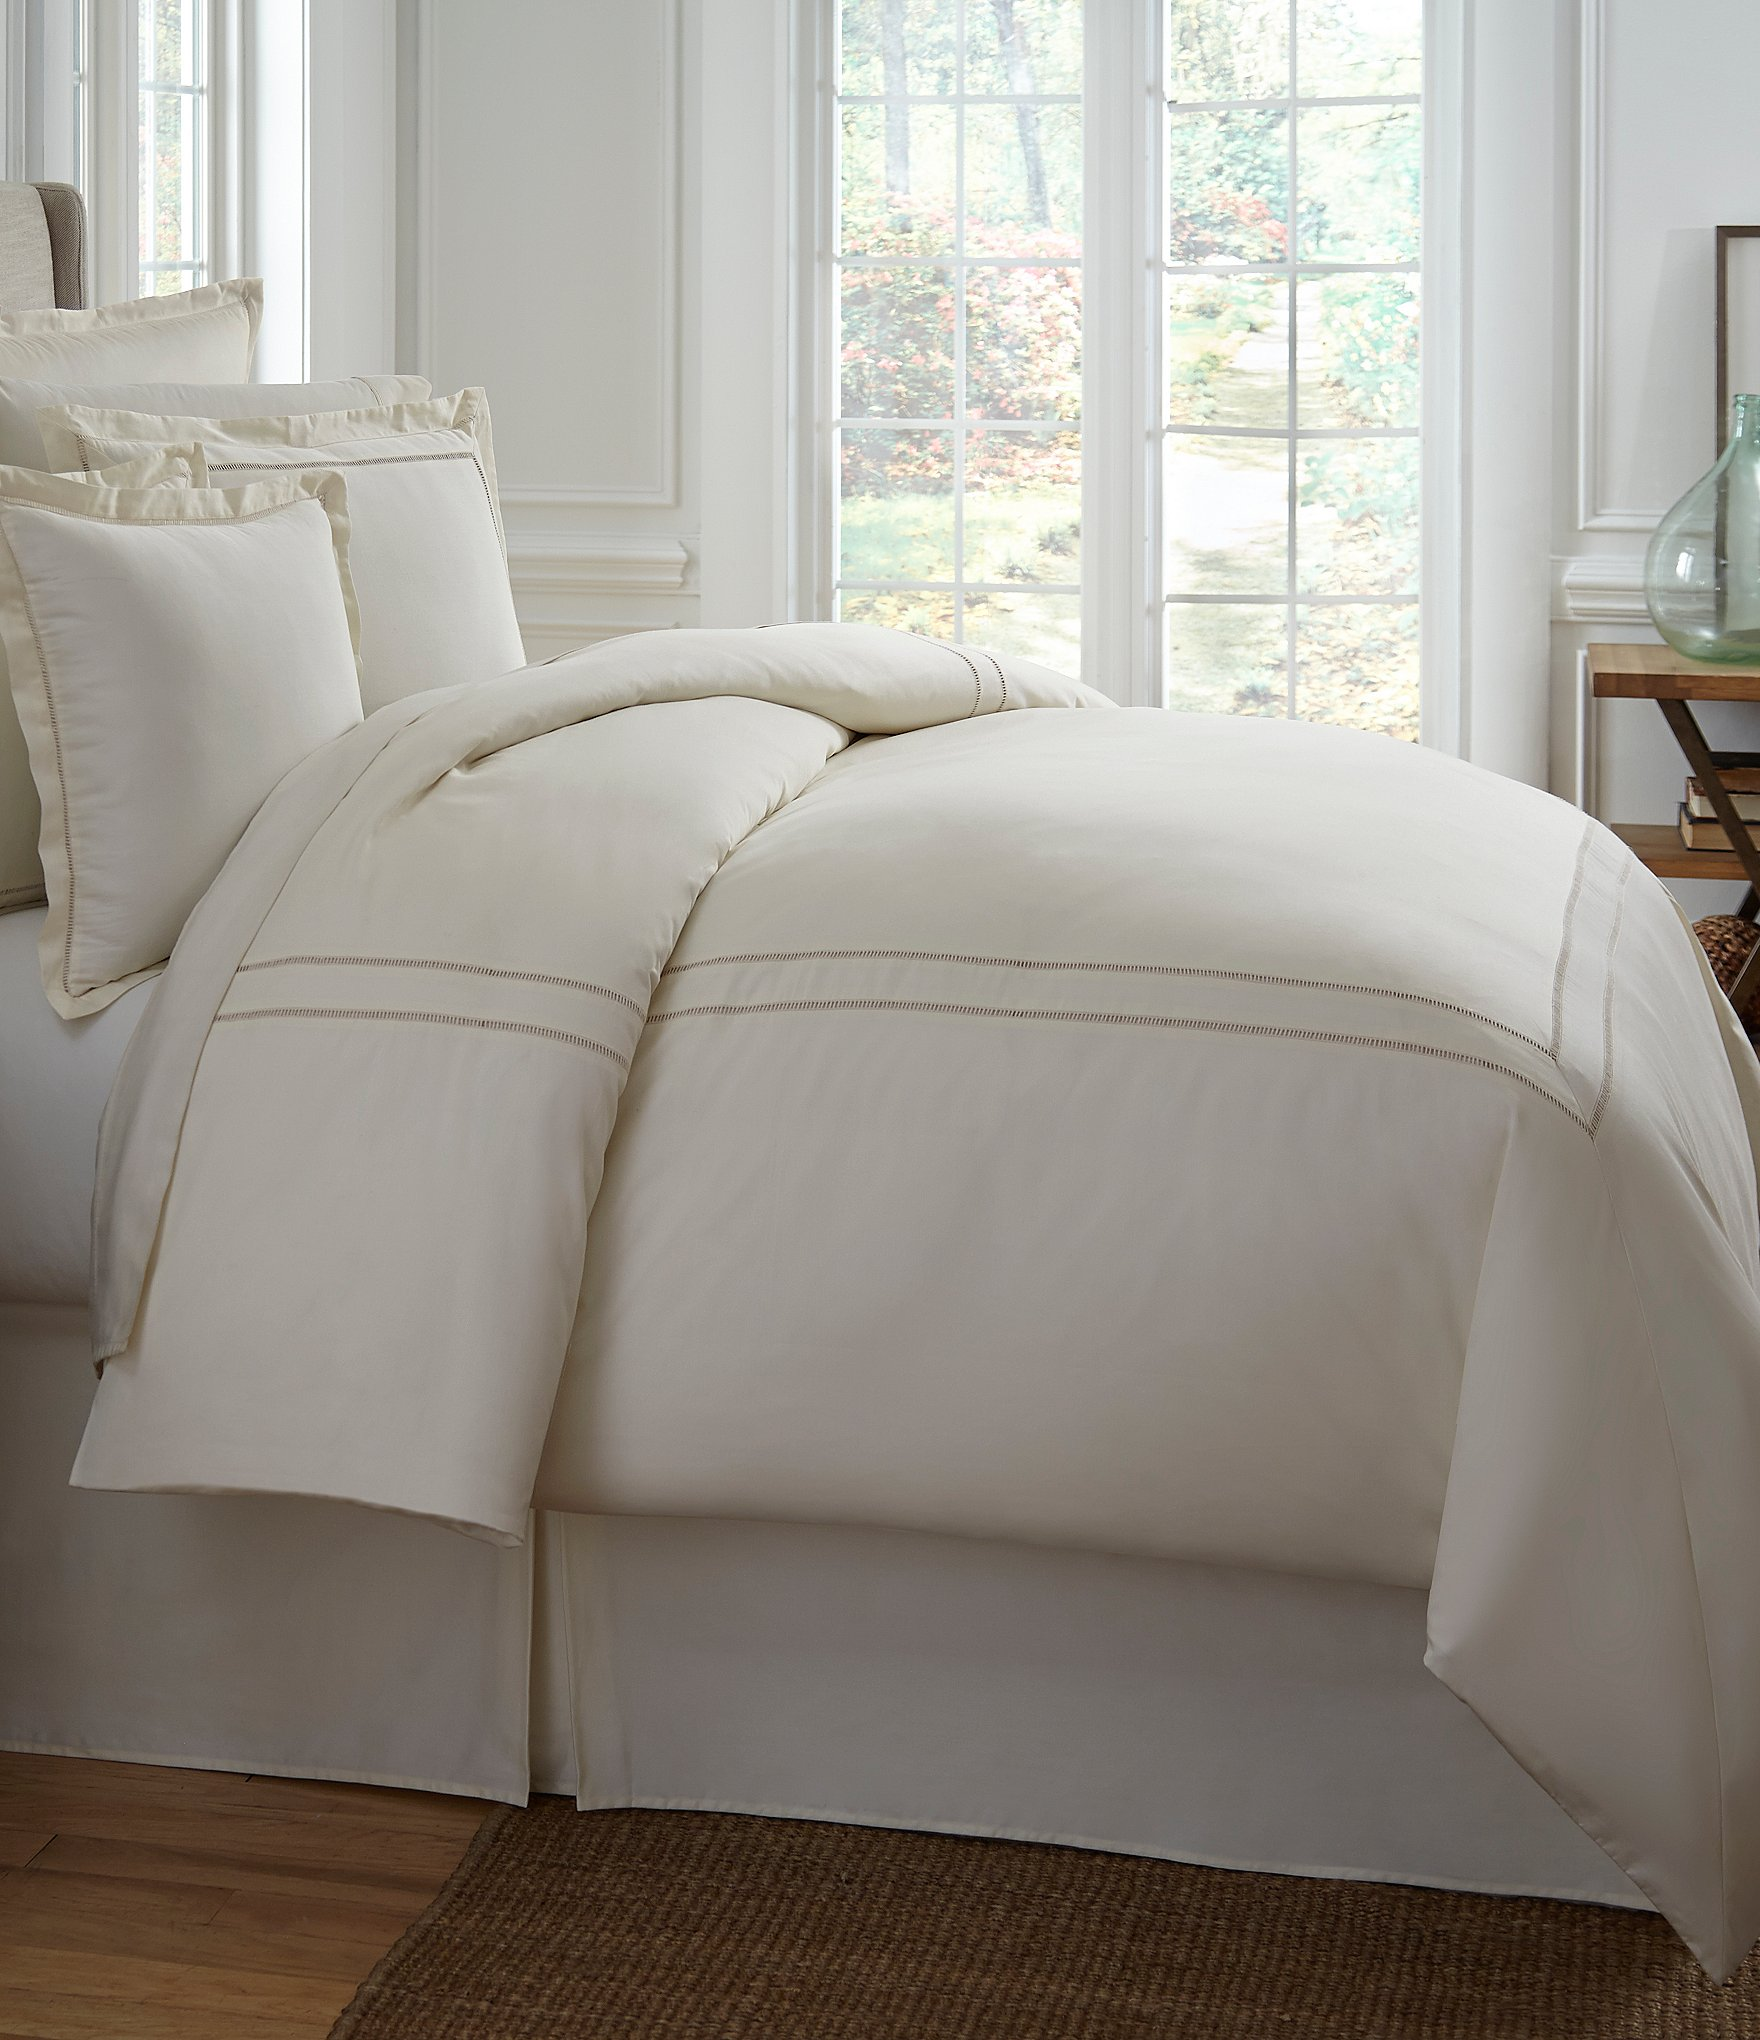 bed bedding count carlo thread williams sonoma montecarlo monte gray products o italian